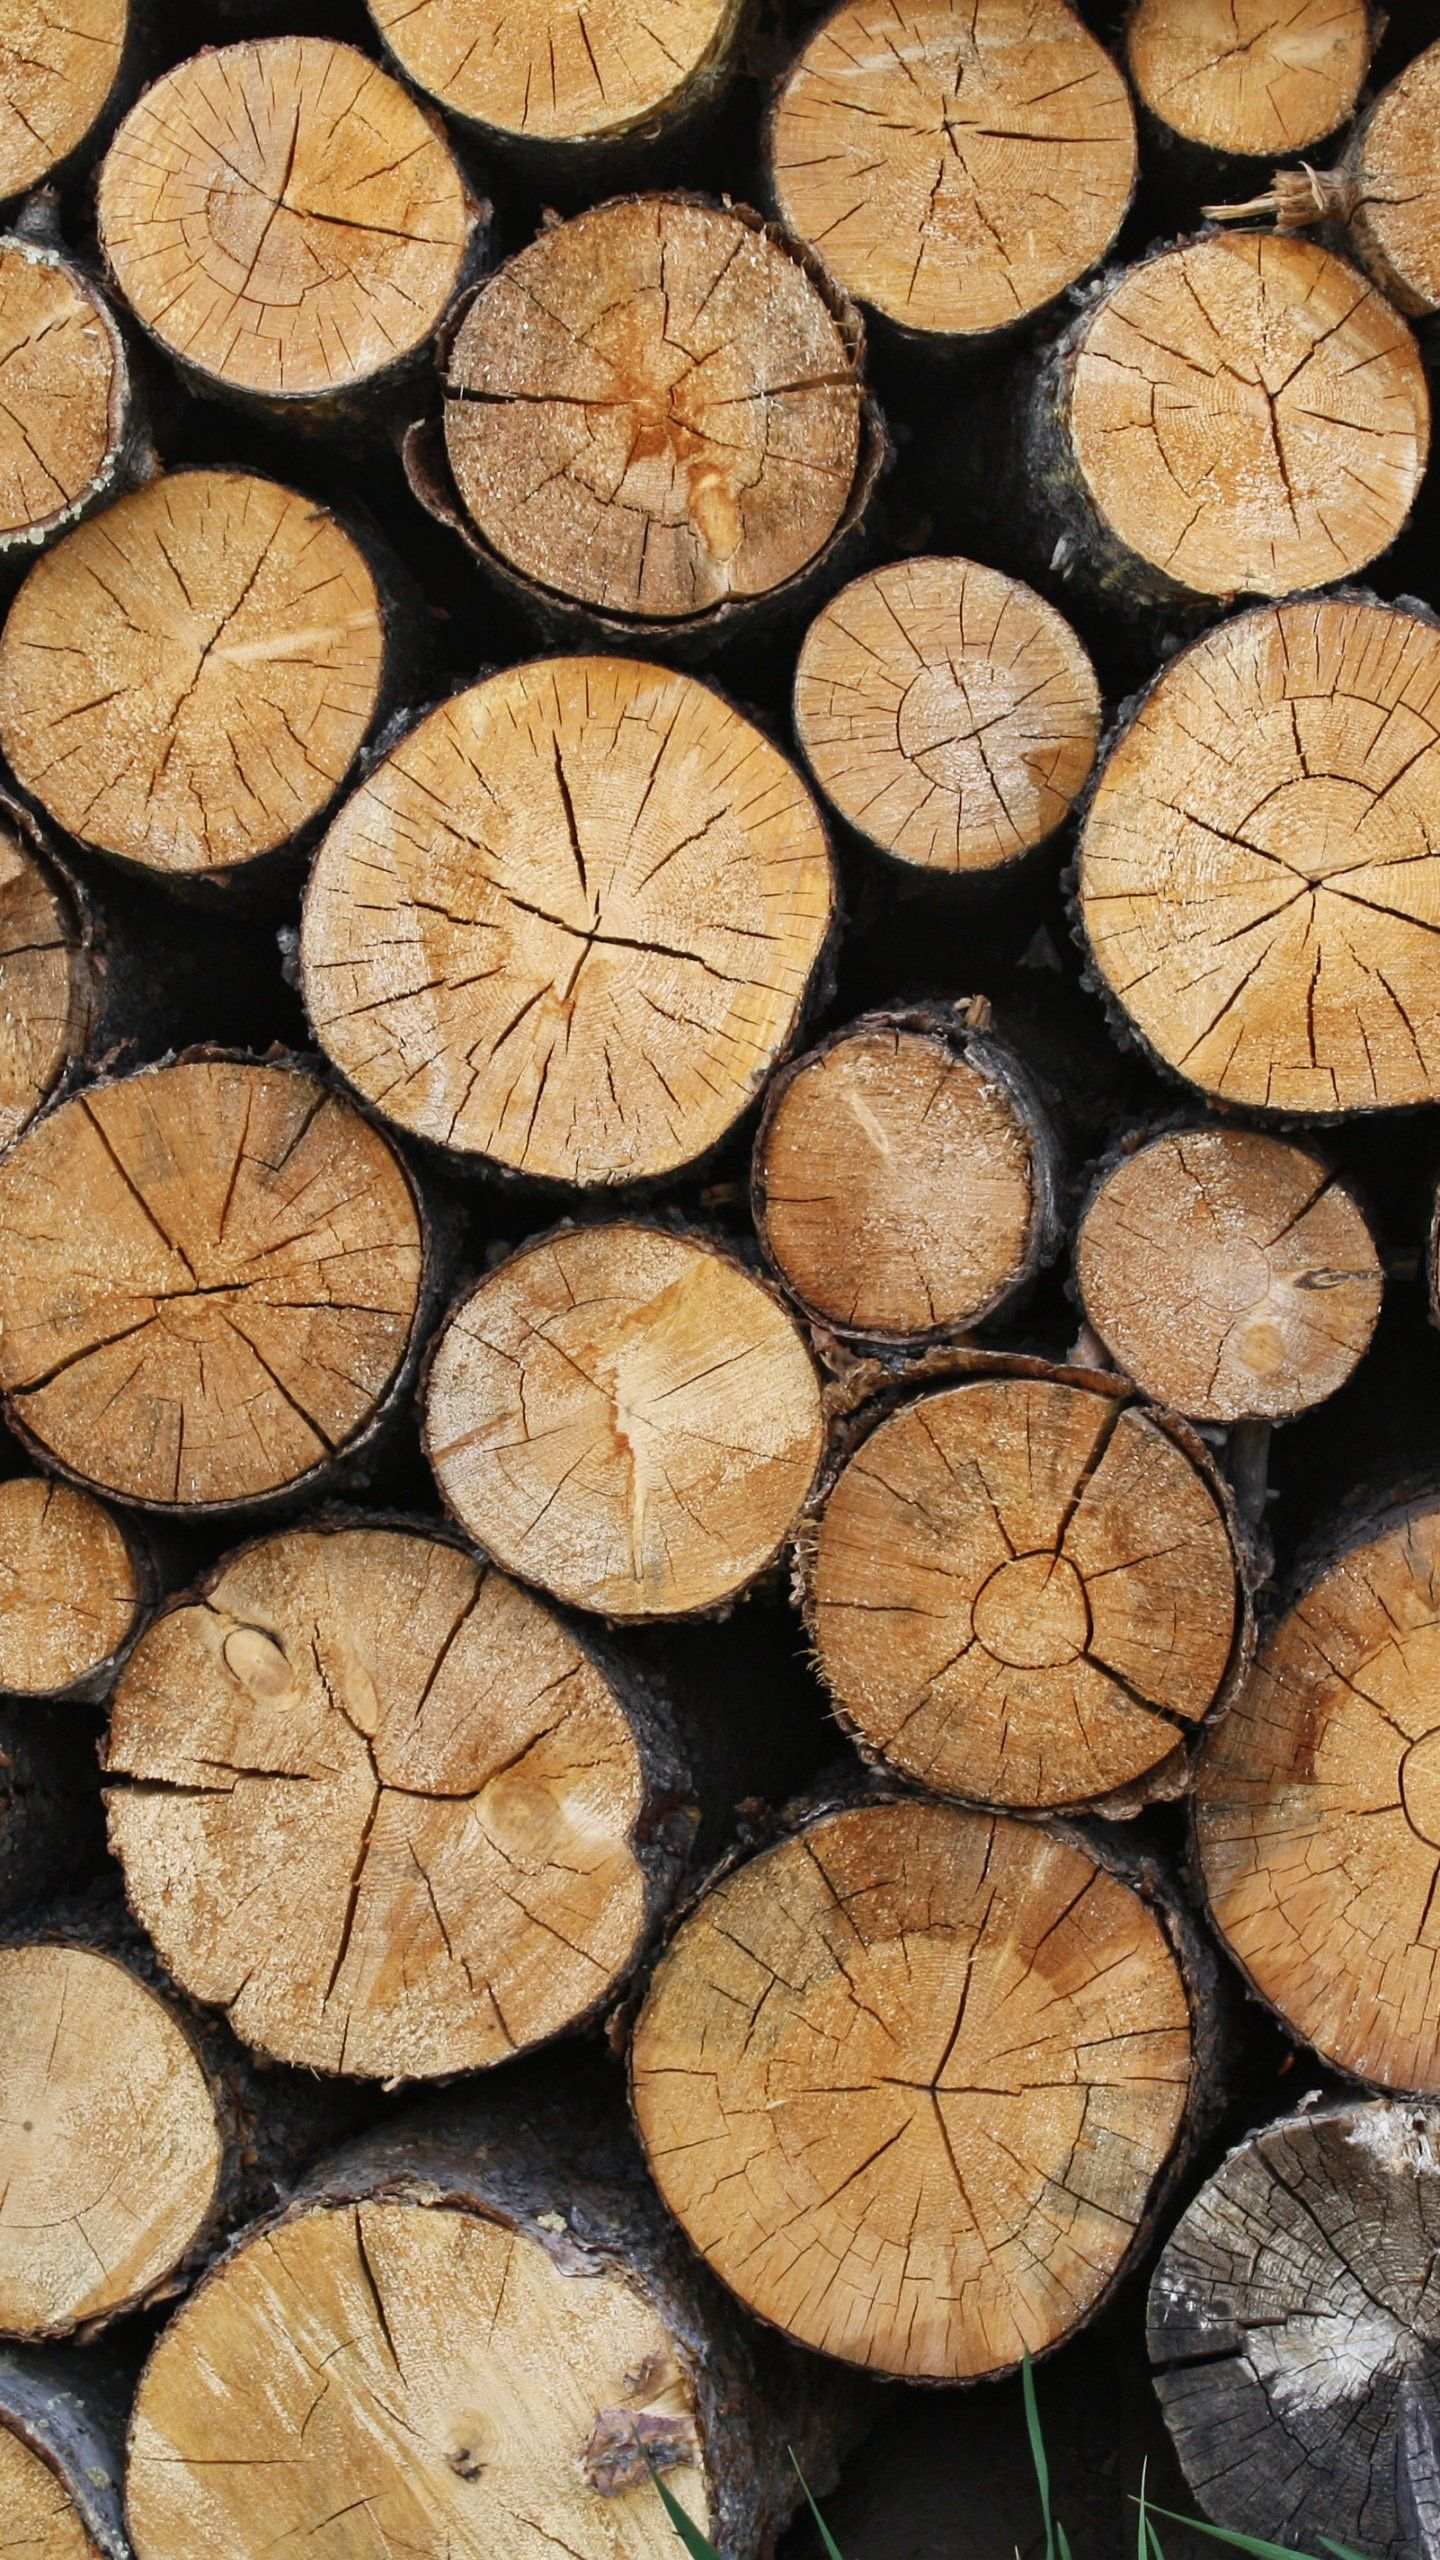 Wooden Logs Texture Wallpaper Iphone Android Desktop Backgrounds Textured Wallpaper Backgrounds Desktop Best Iphone Wallpapers